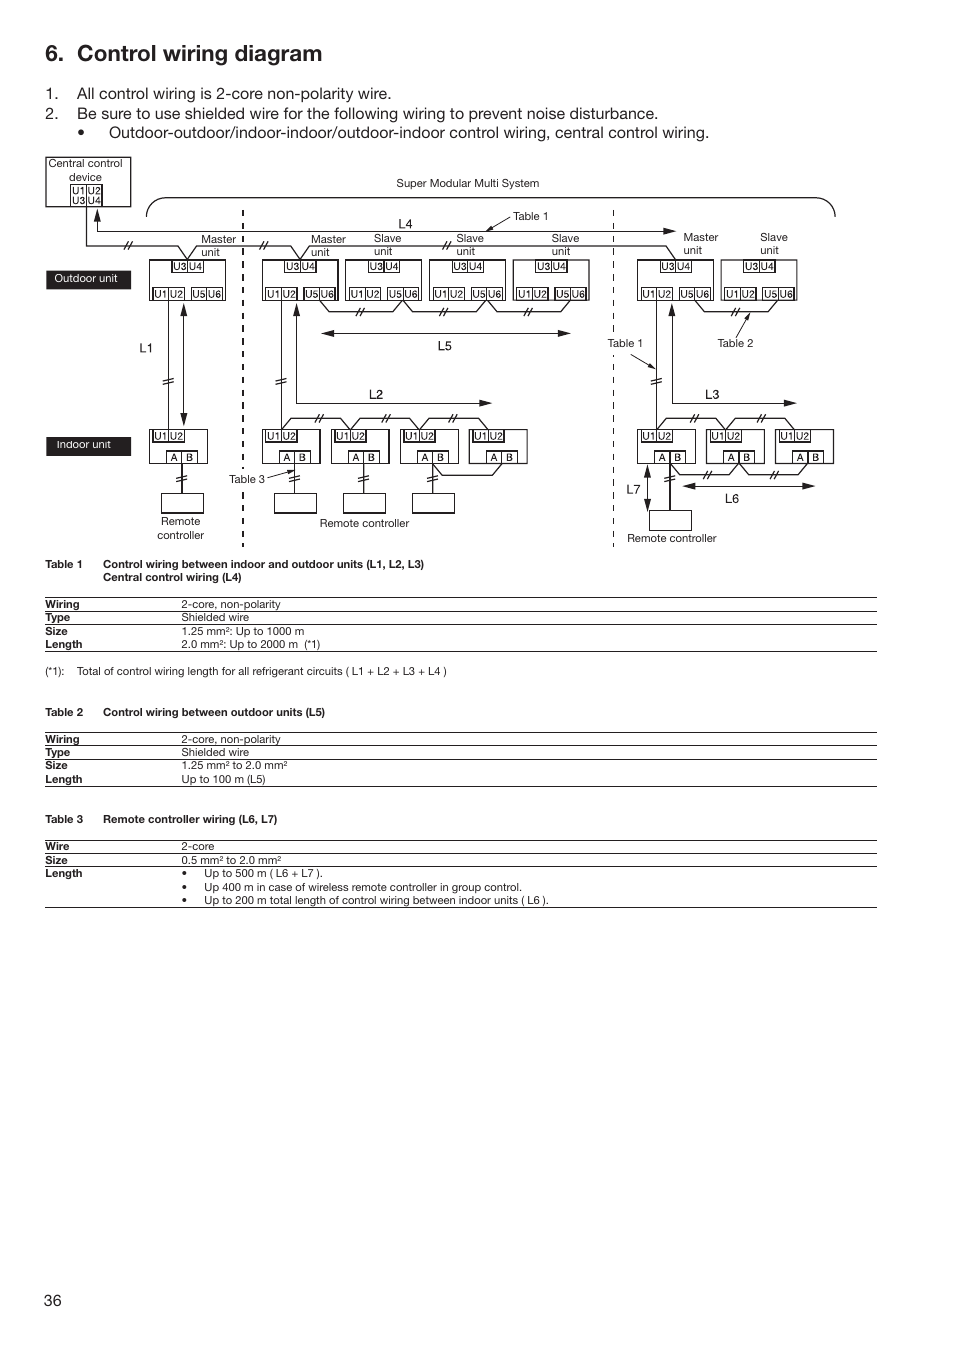 Toshiba Controller Diagram Explained Wiring Diagrams G7 Control Super Modular Multi Hfc R 410a User Pci Simple Communications